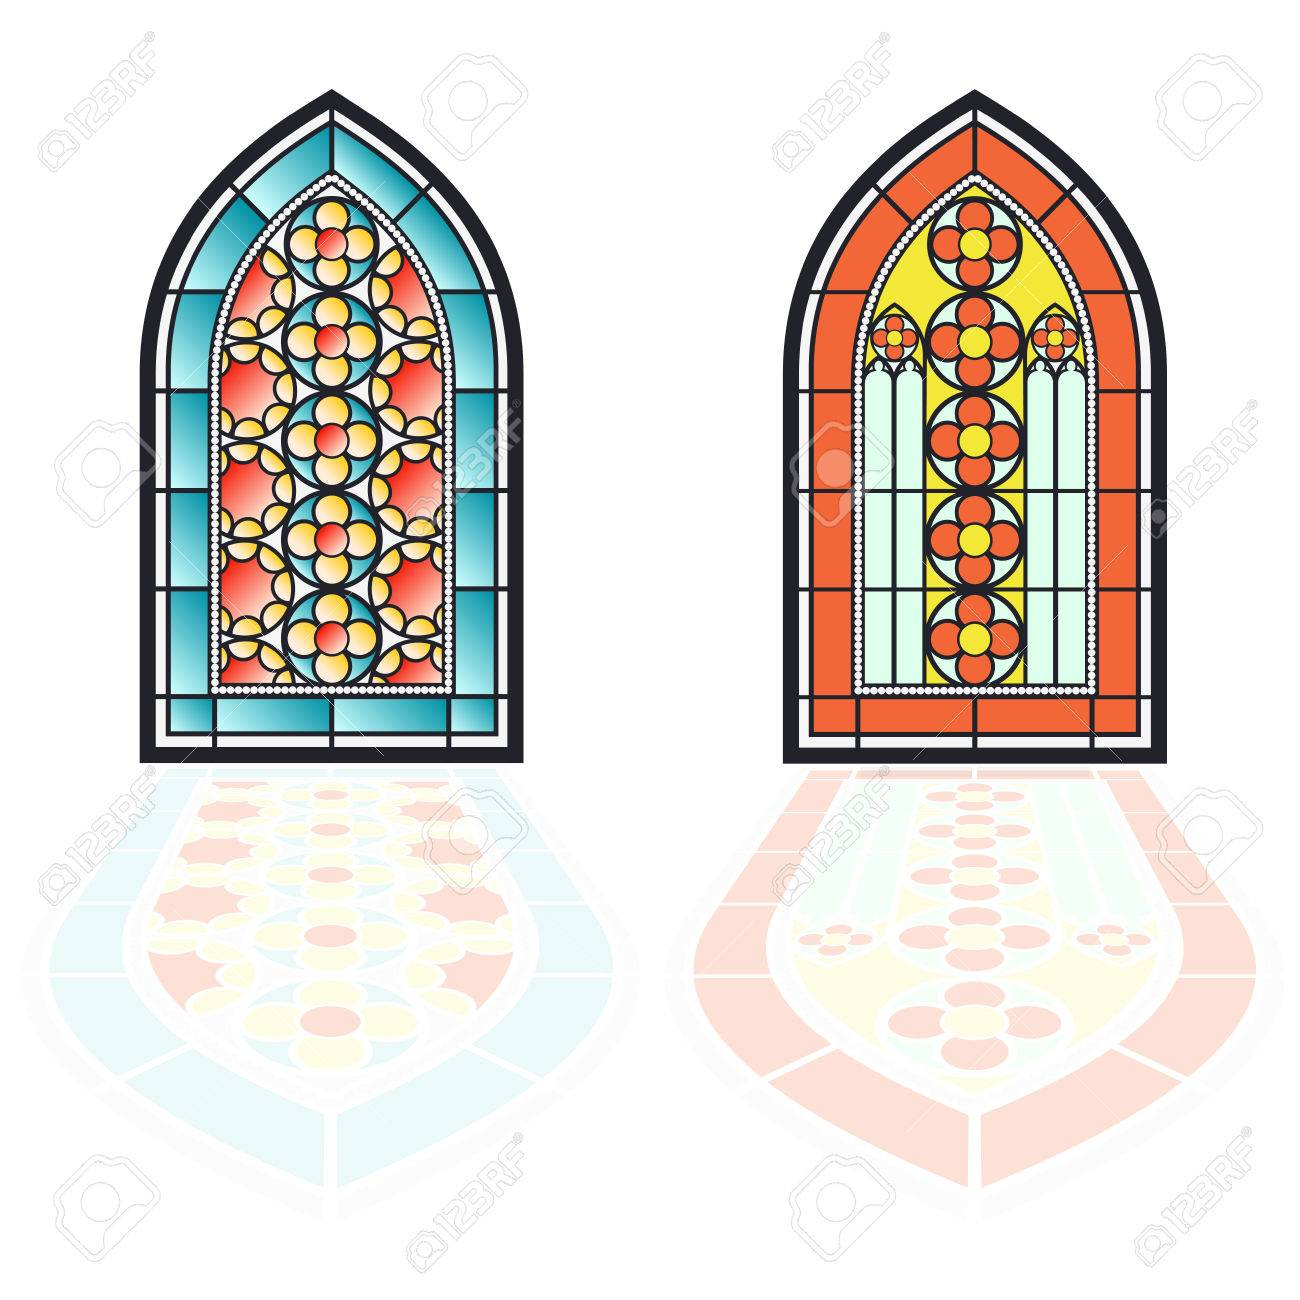 Gothic Windows Vintage Frames Church Stained Glass Stock Vector